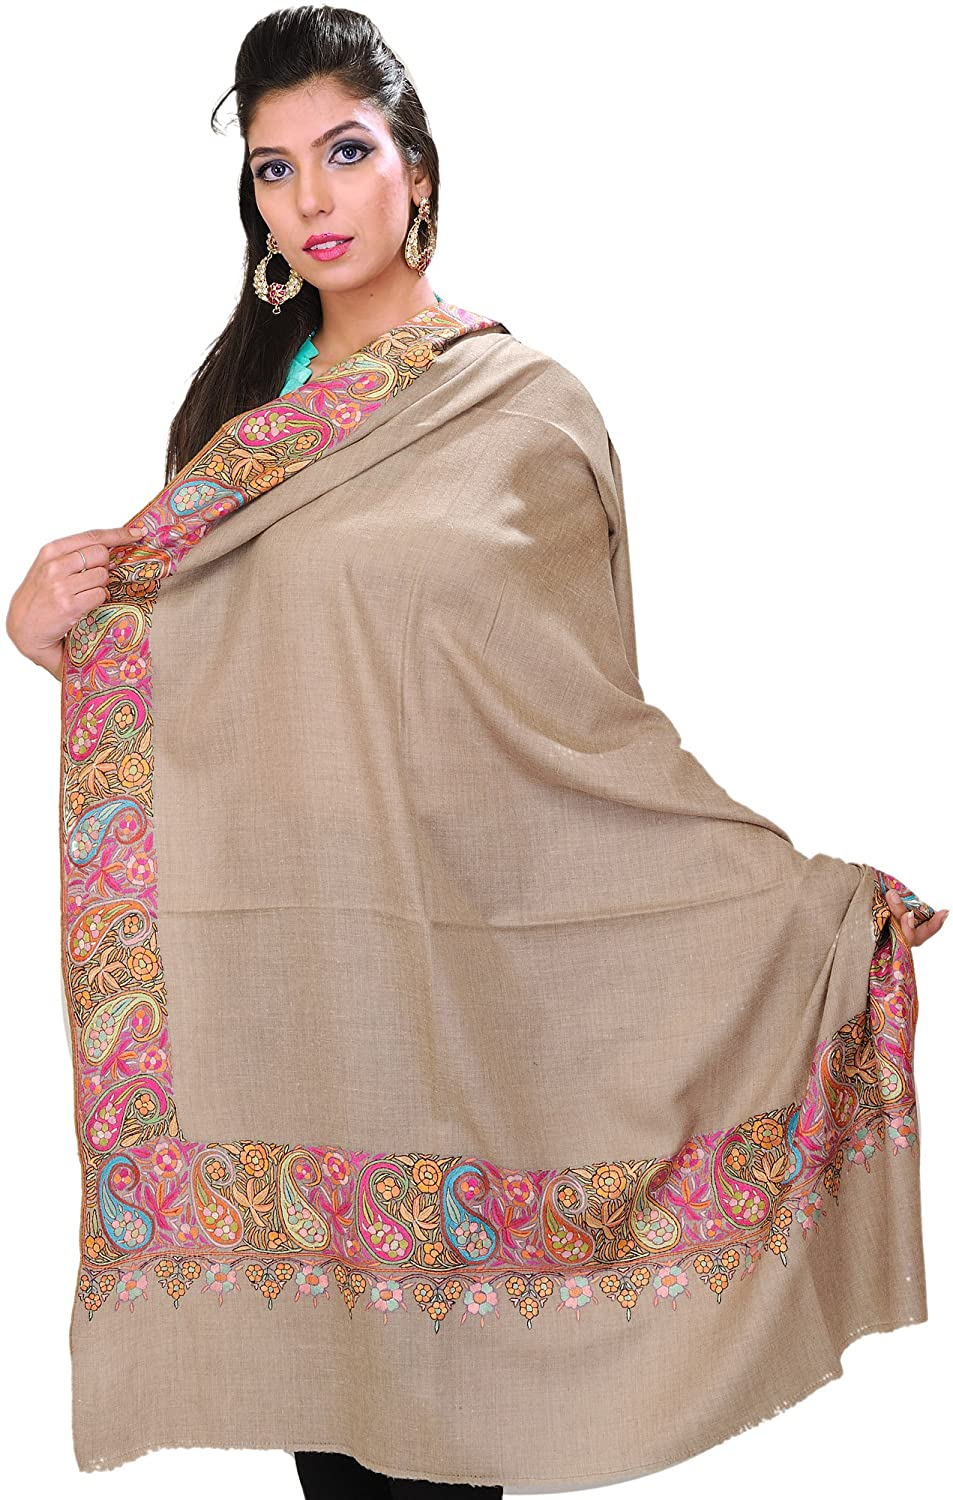 Exotic India Warm-Taupe Pure Pashmina Shawl from Kashmir with Hand-Embroi - Gray